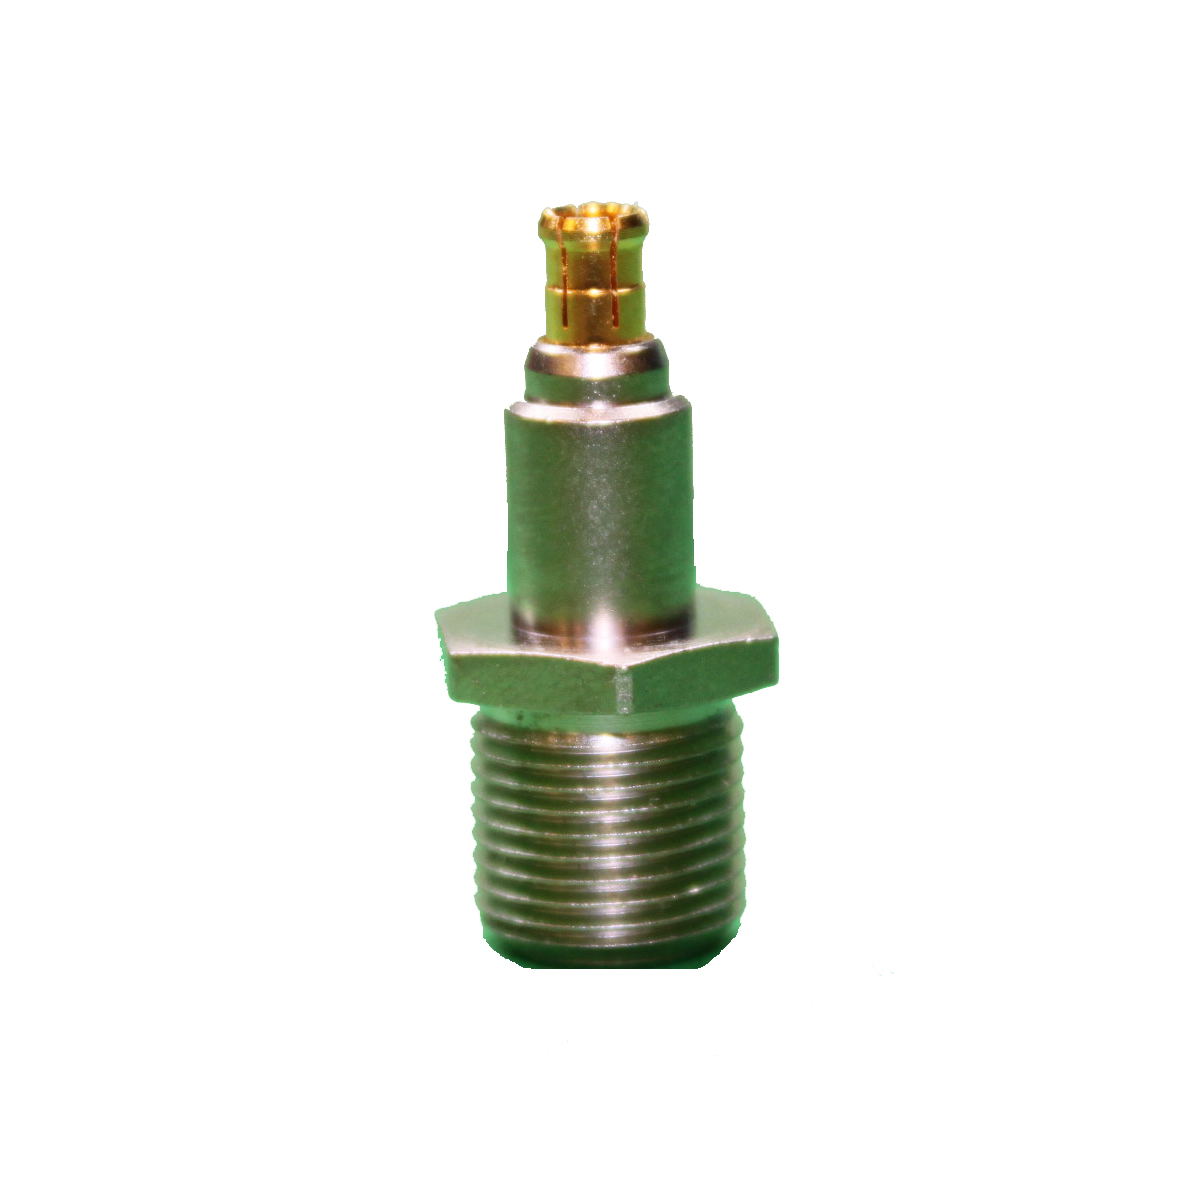 B&L Coaxial Connectors - Products - MCX Connector